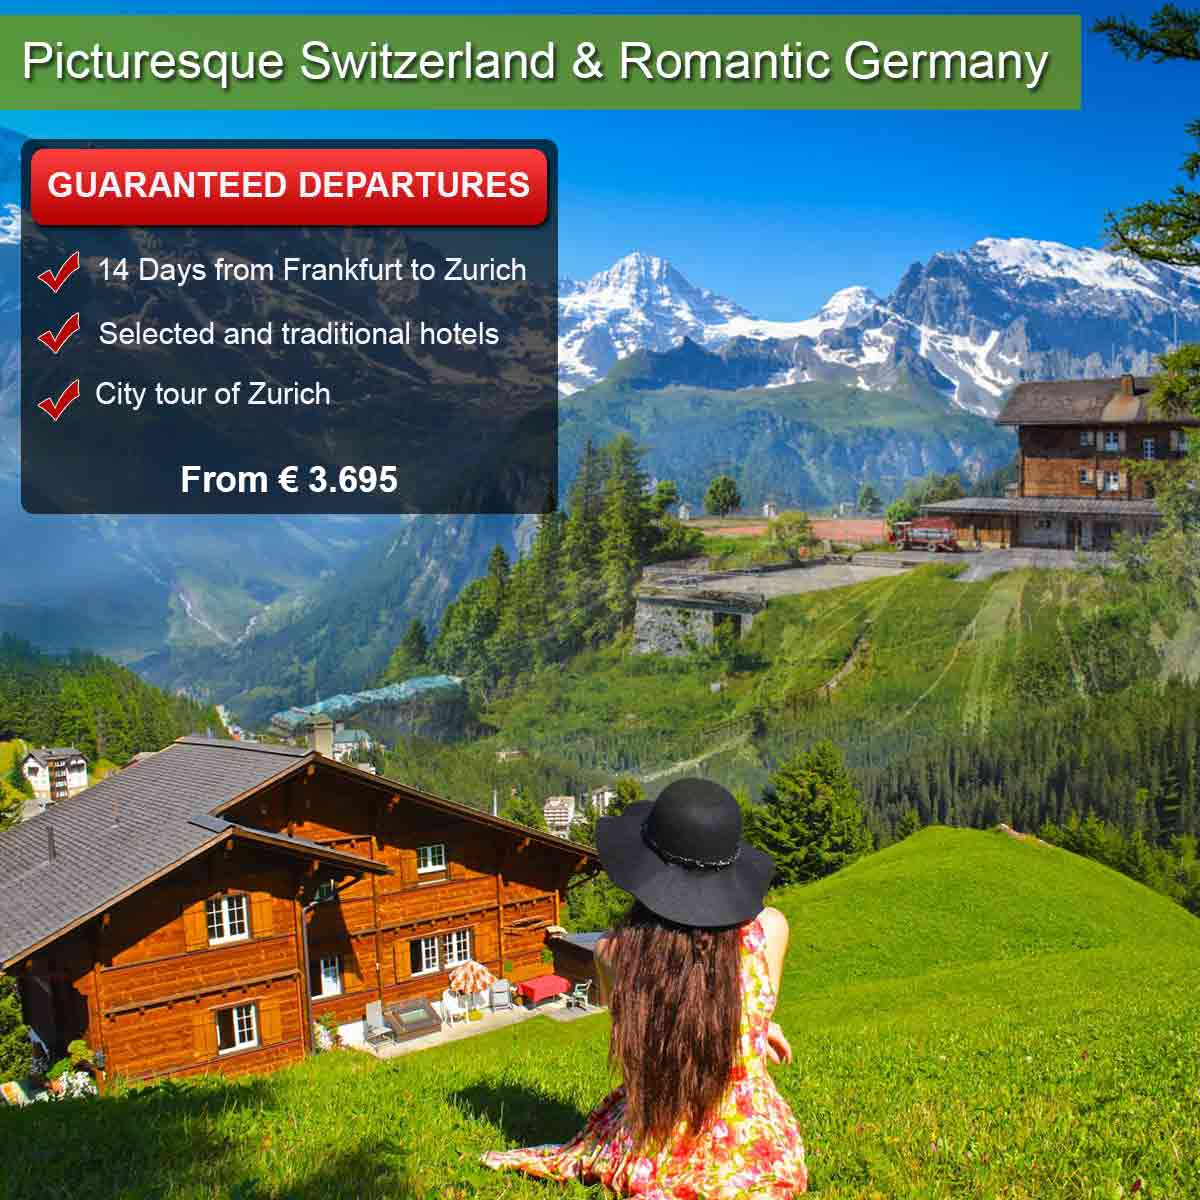 Romantic Germany & Picturesque Switzerland